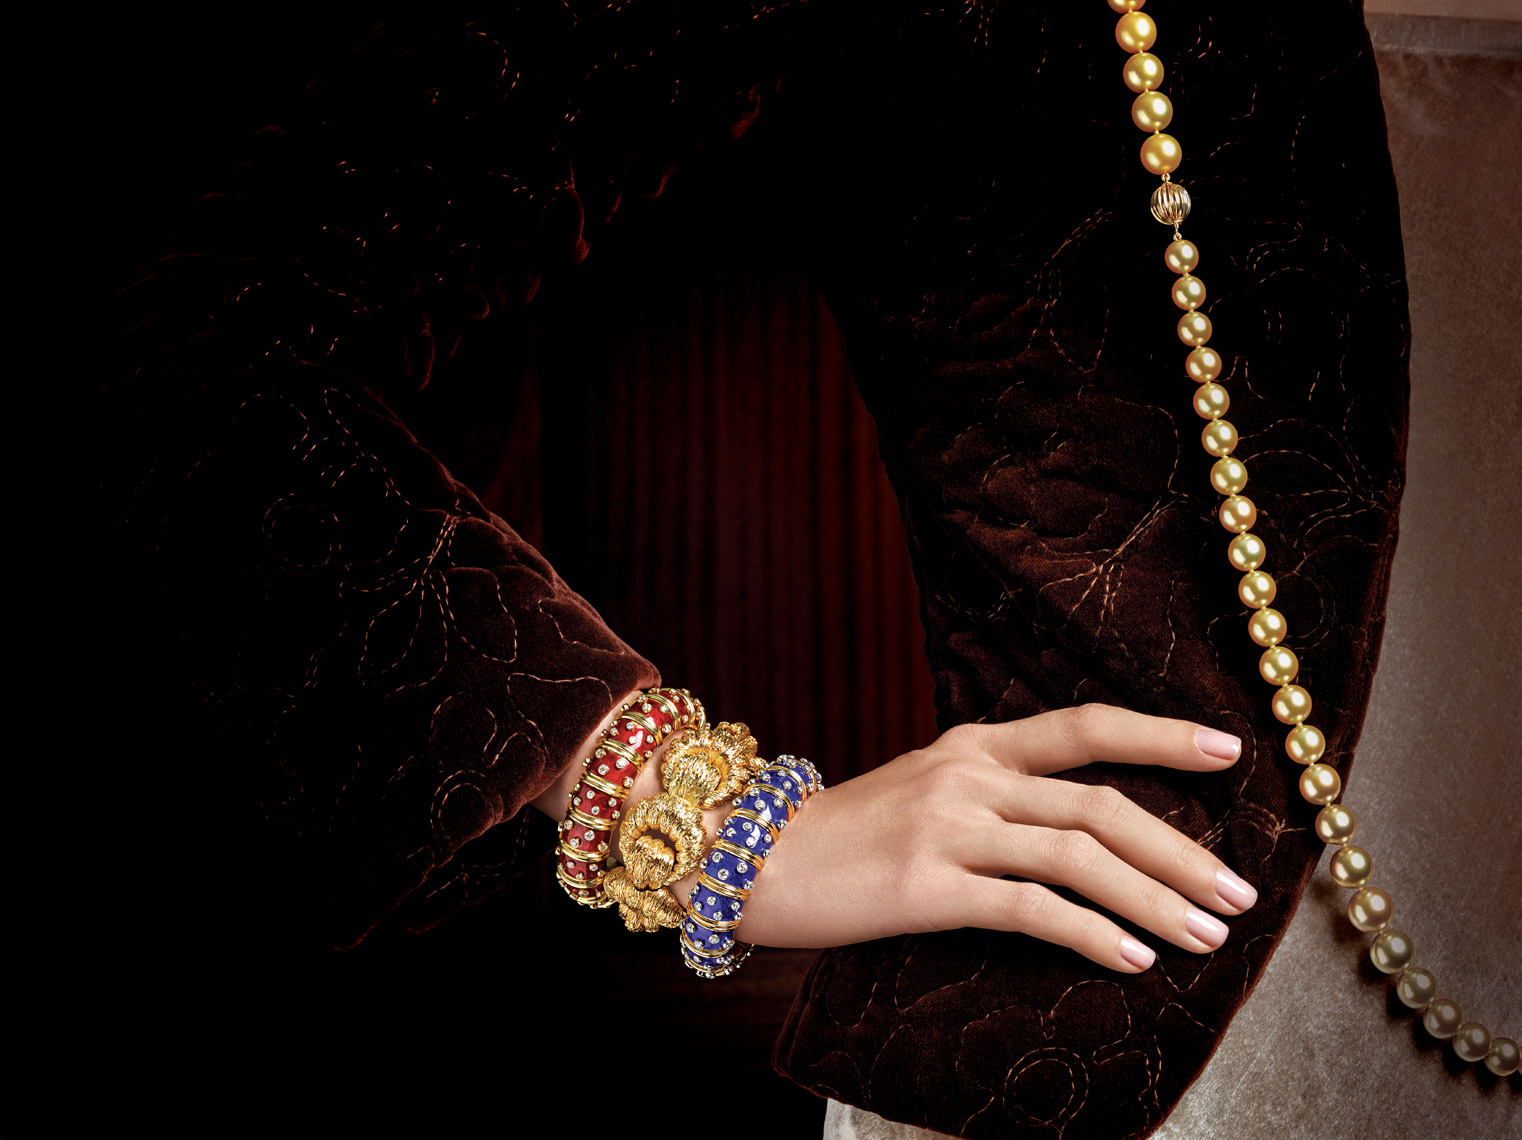 Jewelry Photography on Model - Macklowe Yellow Gold  Bracelet and Pearls